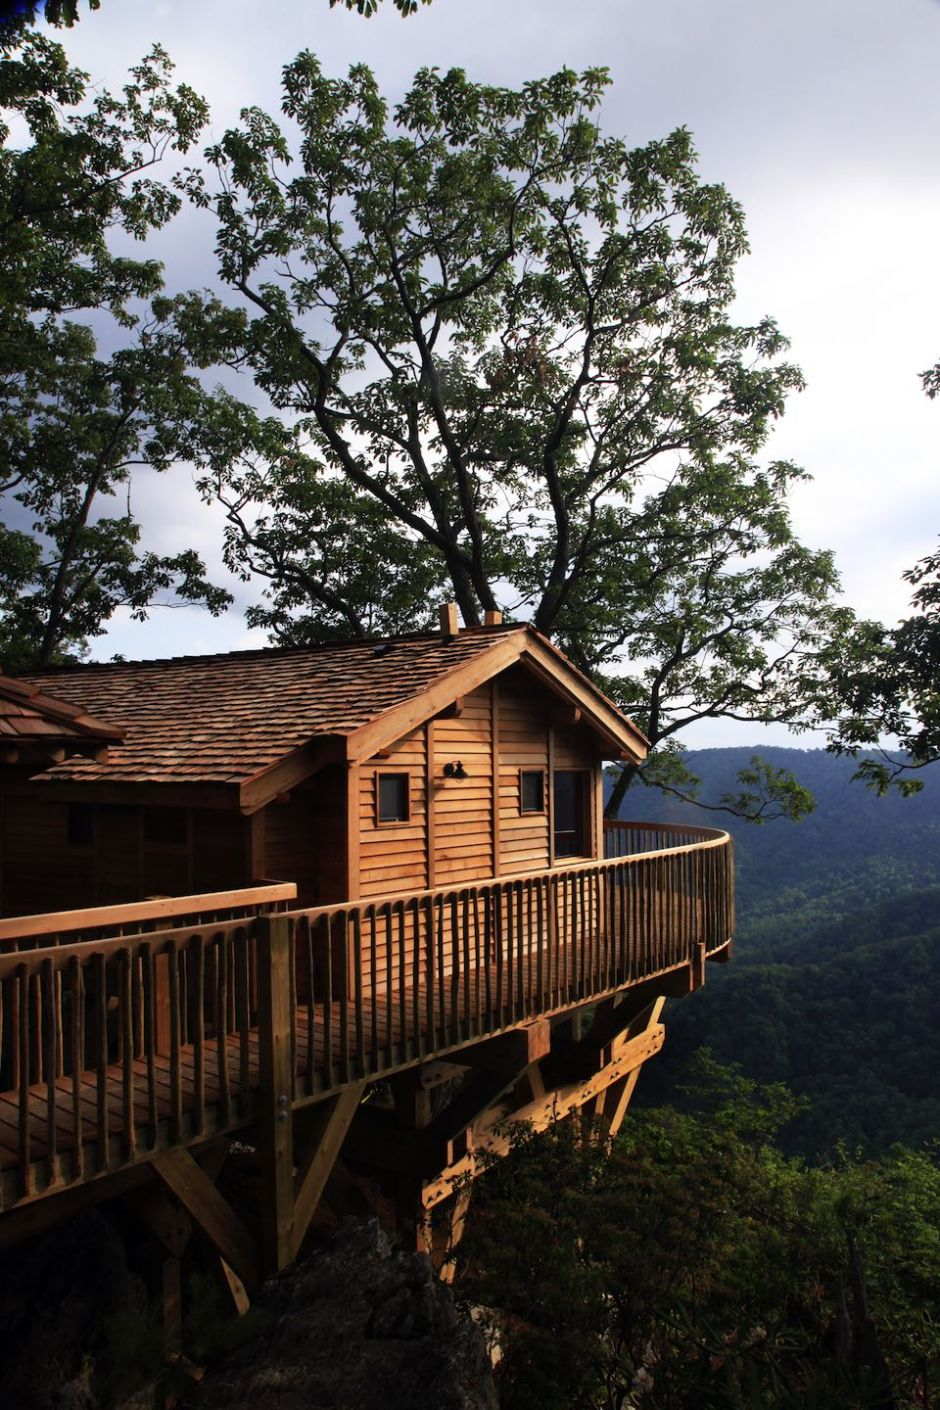 Virginia Primland's tree house